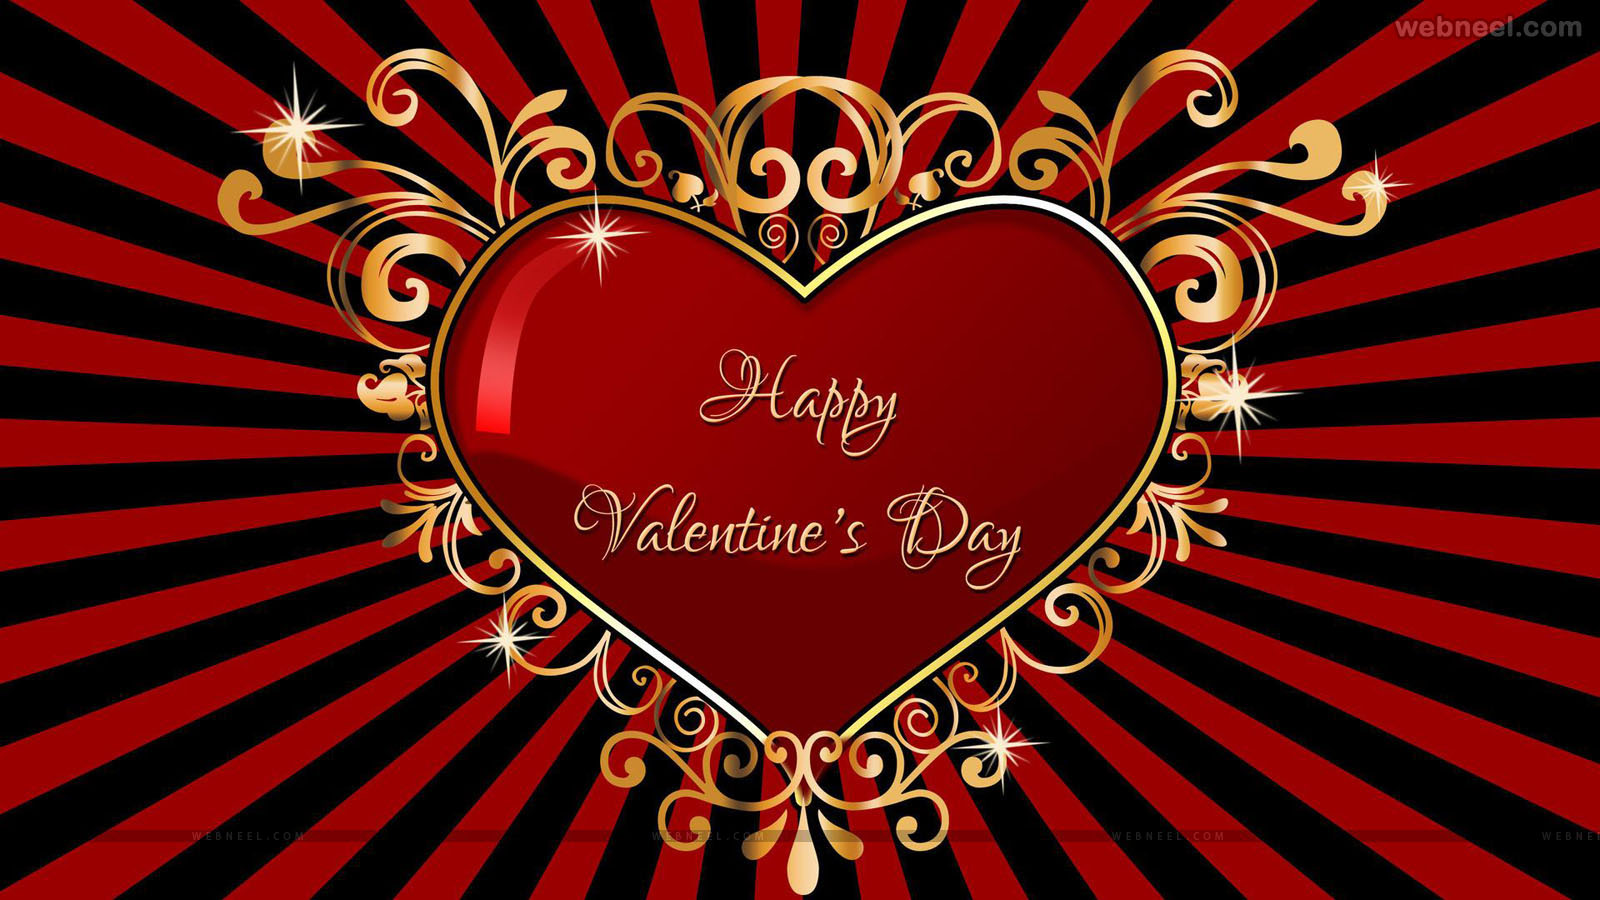 Happy Valentines Day Wallpapers 1600x900